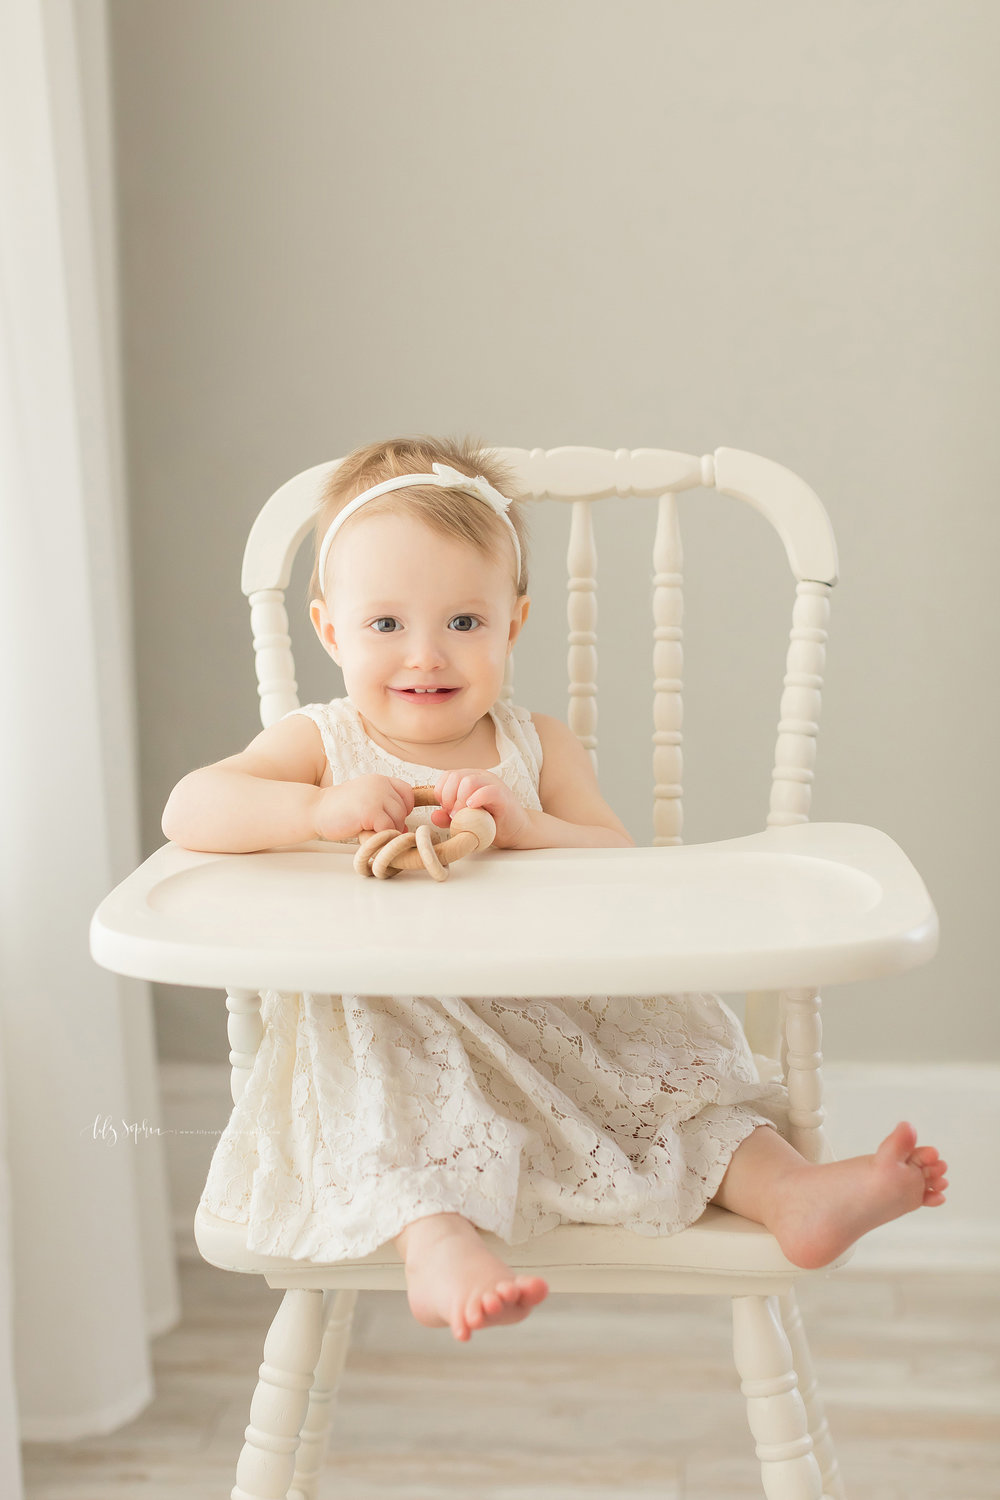 atlanta-midtown-sandy-springs-decatur-lily-sophia-photography-photographer-first-birthday-cake-smash-baby-girl_0207.jpg